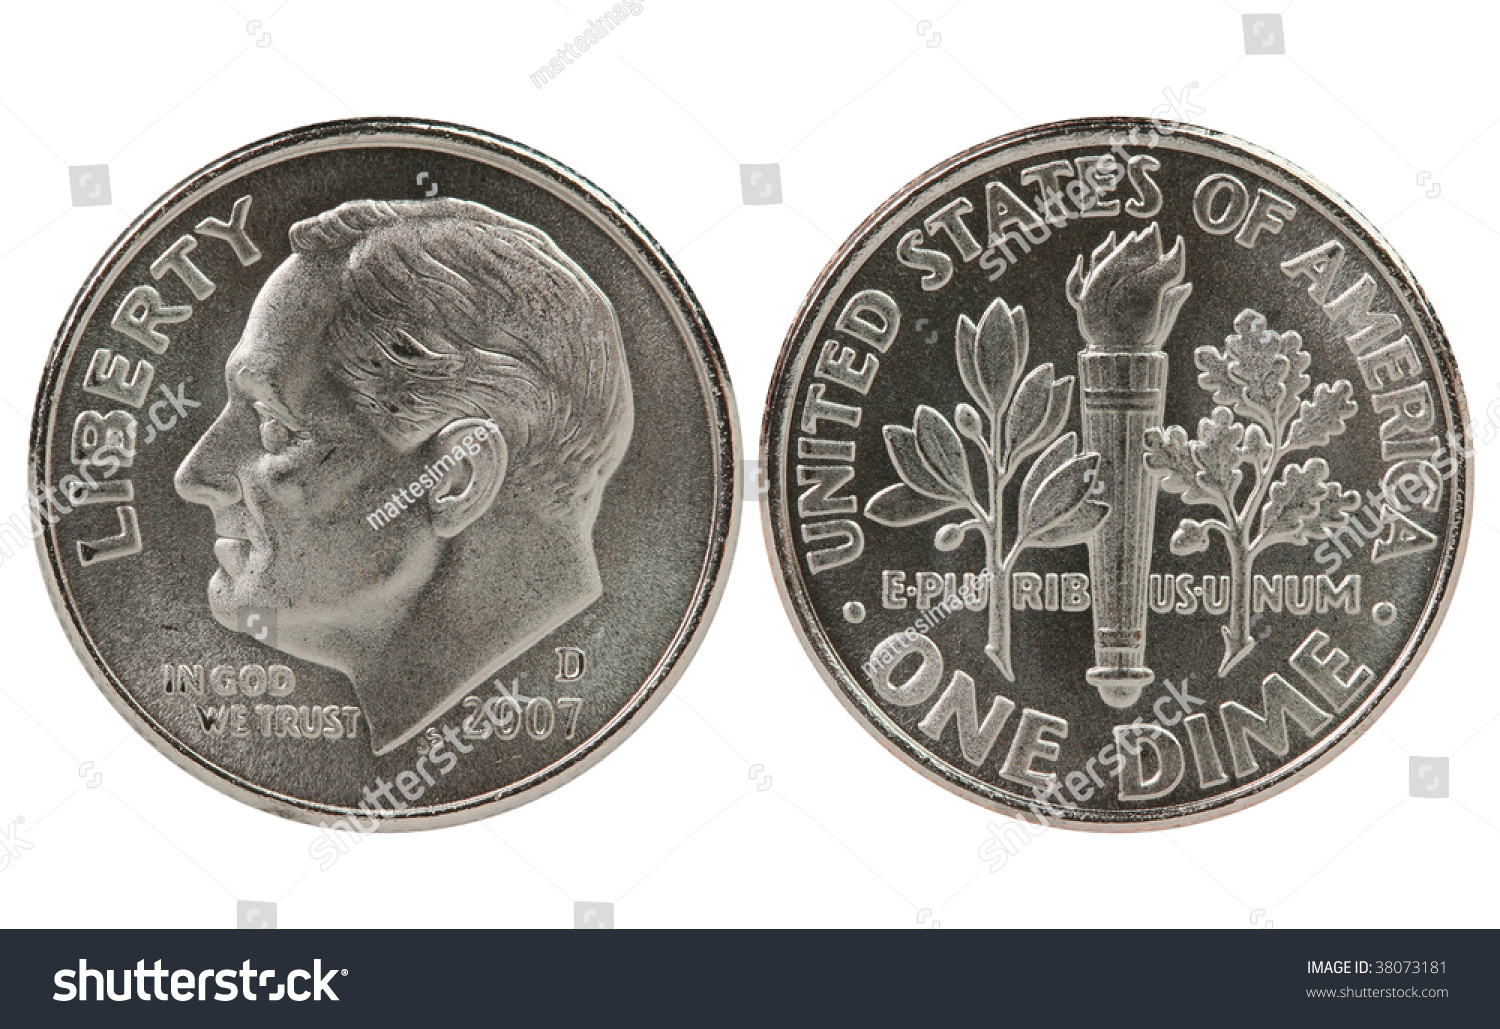 Franklin Roosevelt Dime Coin Both Sides Stock Photo